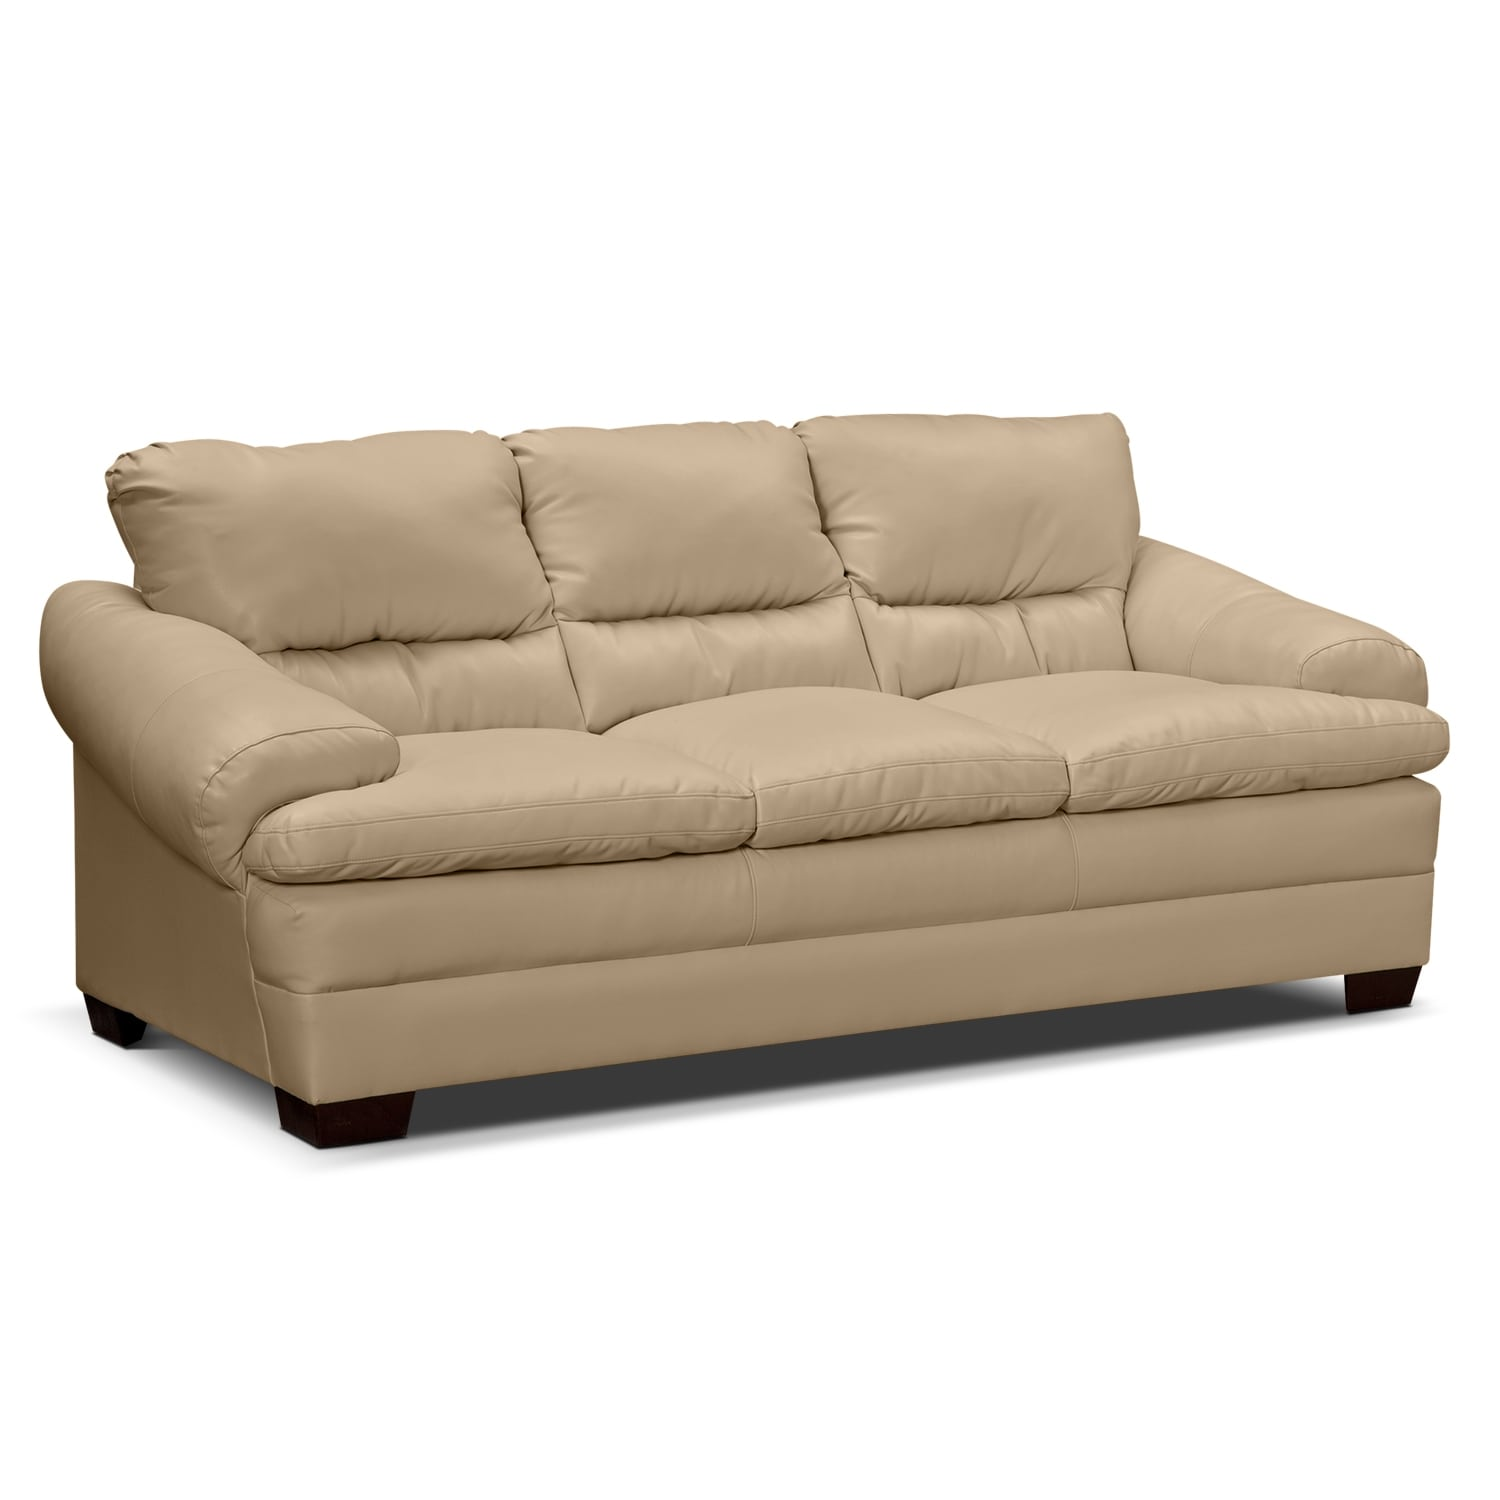 Best Sofa Brands